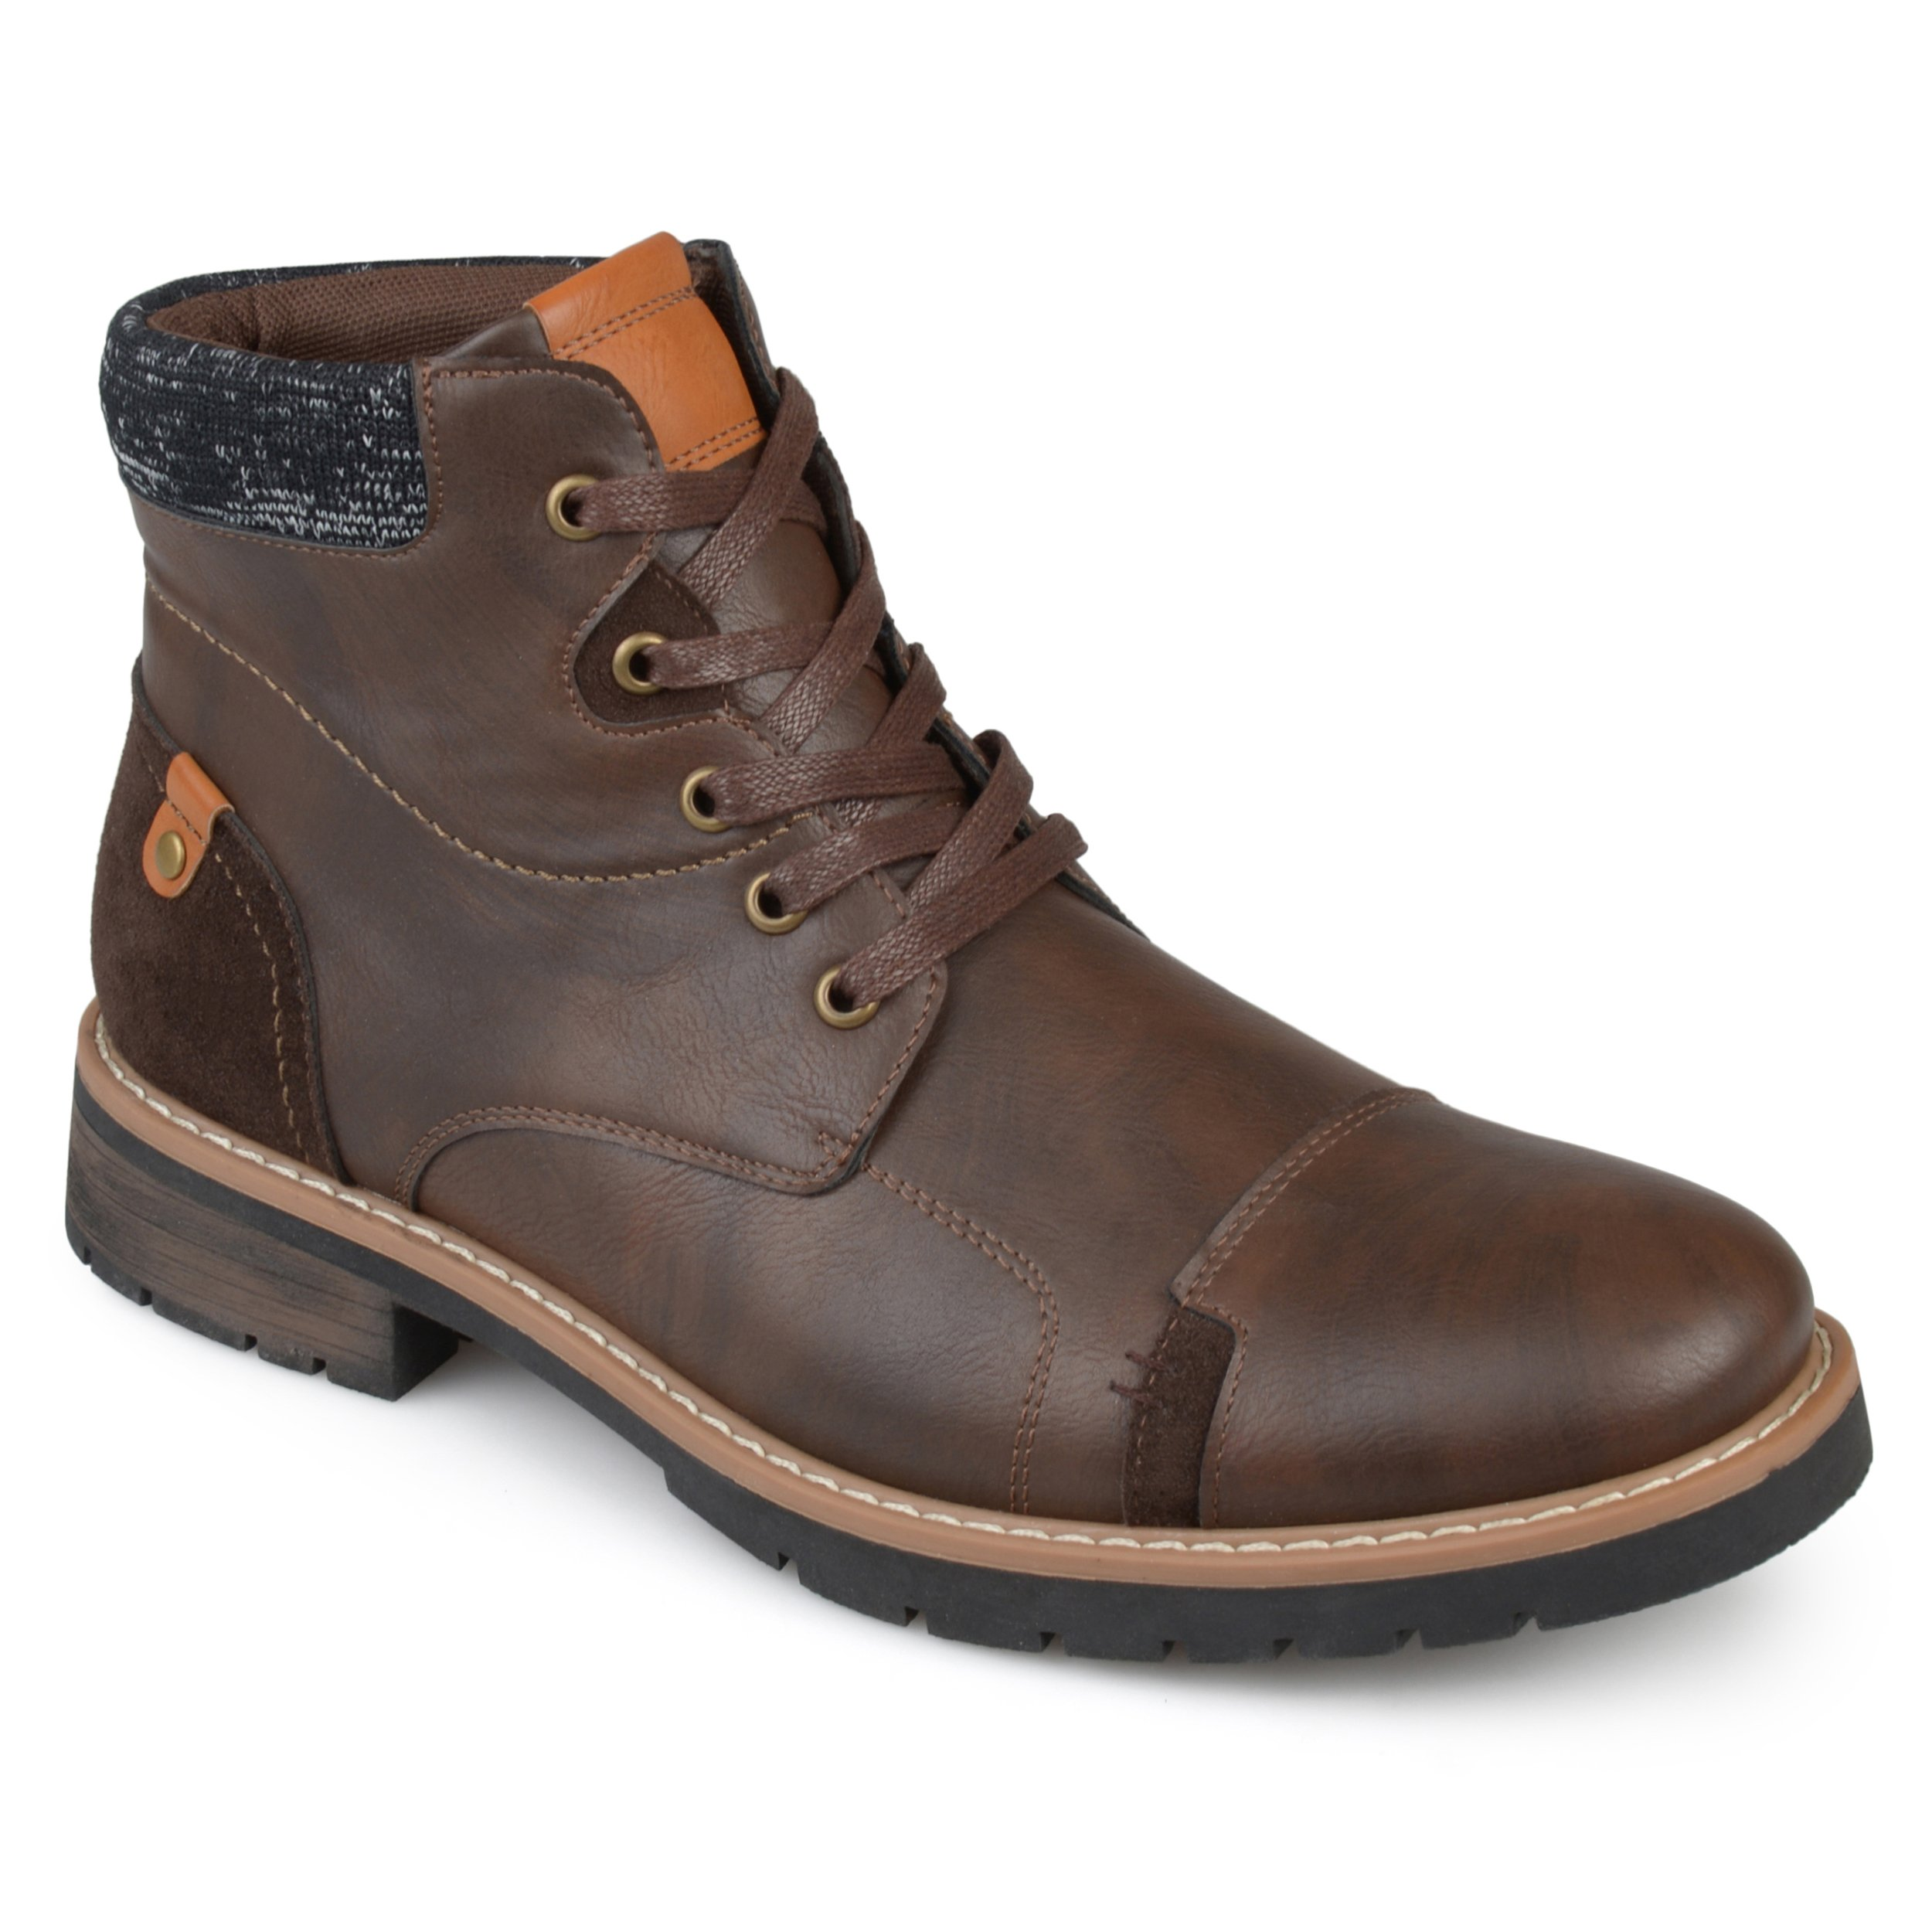 Vance Co. Mens Faux Leather Lace-up Boots Brown, 11 Regular US by Vance Co.